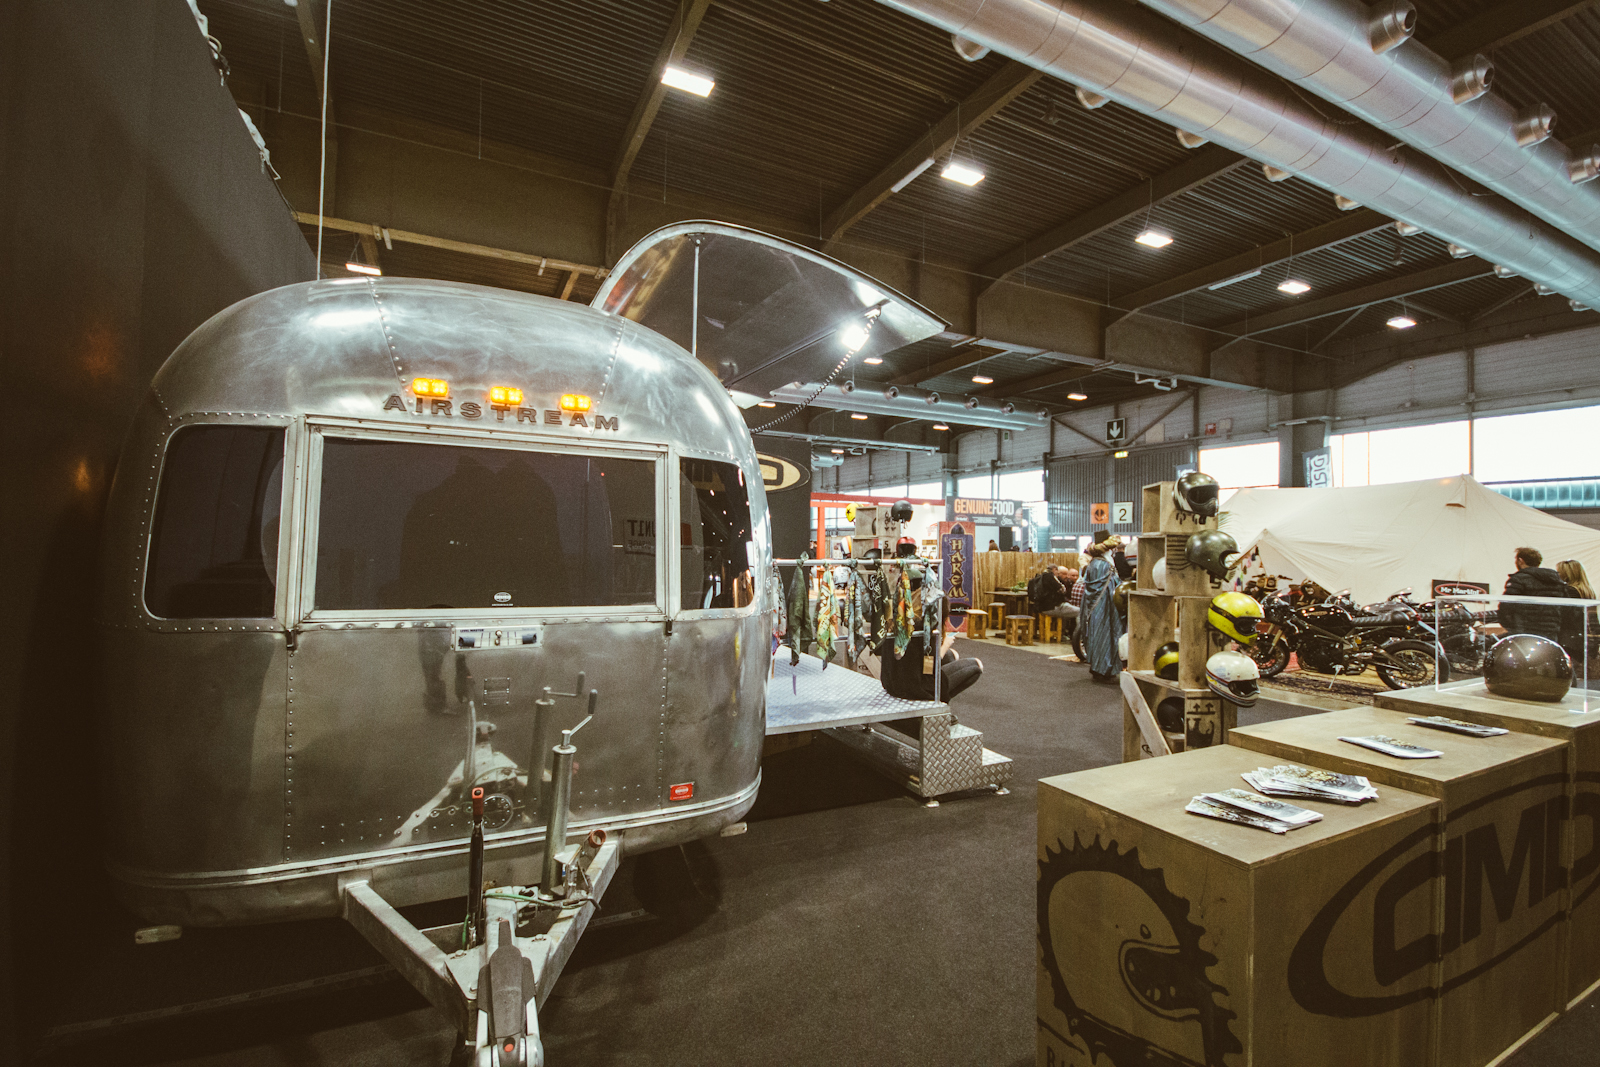 Airstream 21 feet by Officine Vivaldi Ai